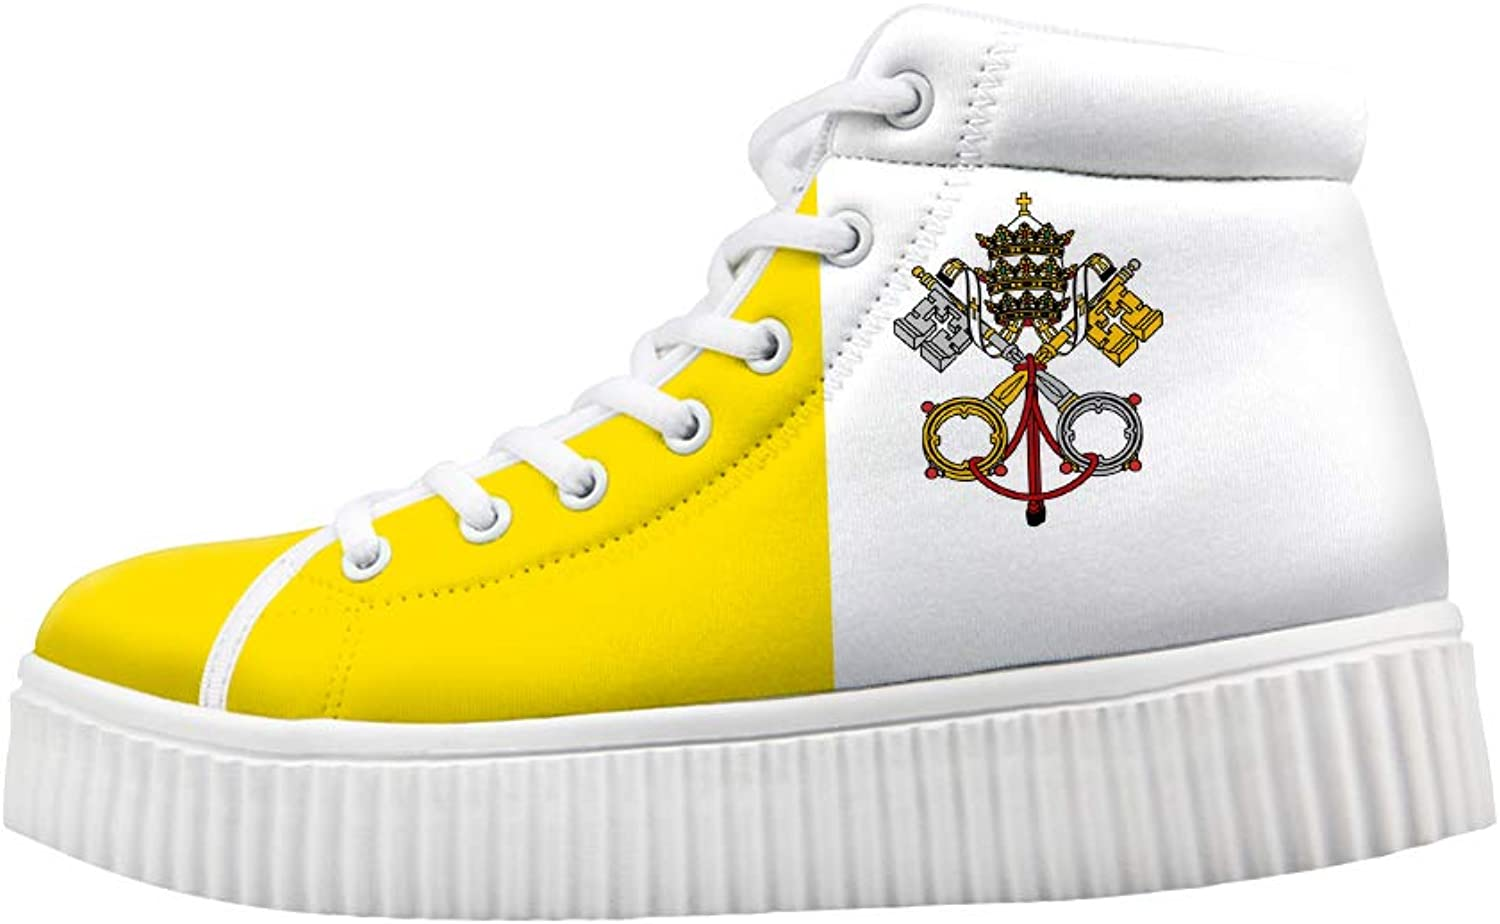 Owaheson Platform Lace up Sneaker Casual Chunky Walking shoes High Top Women Vatican City Flag